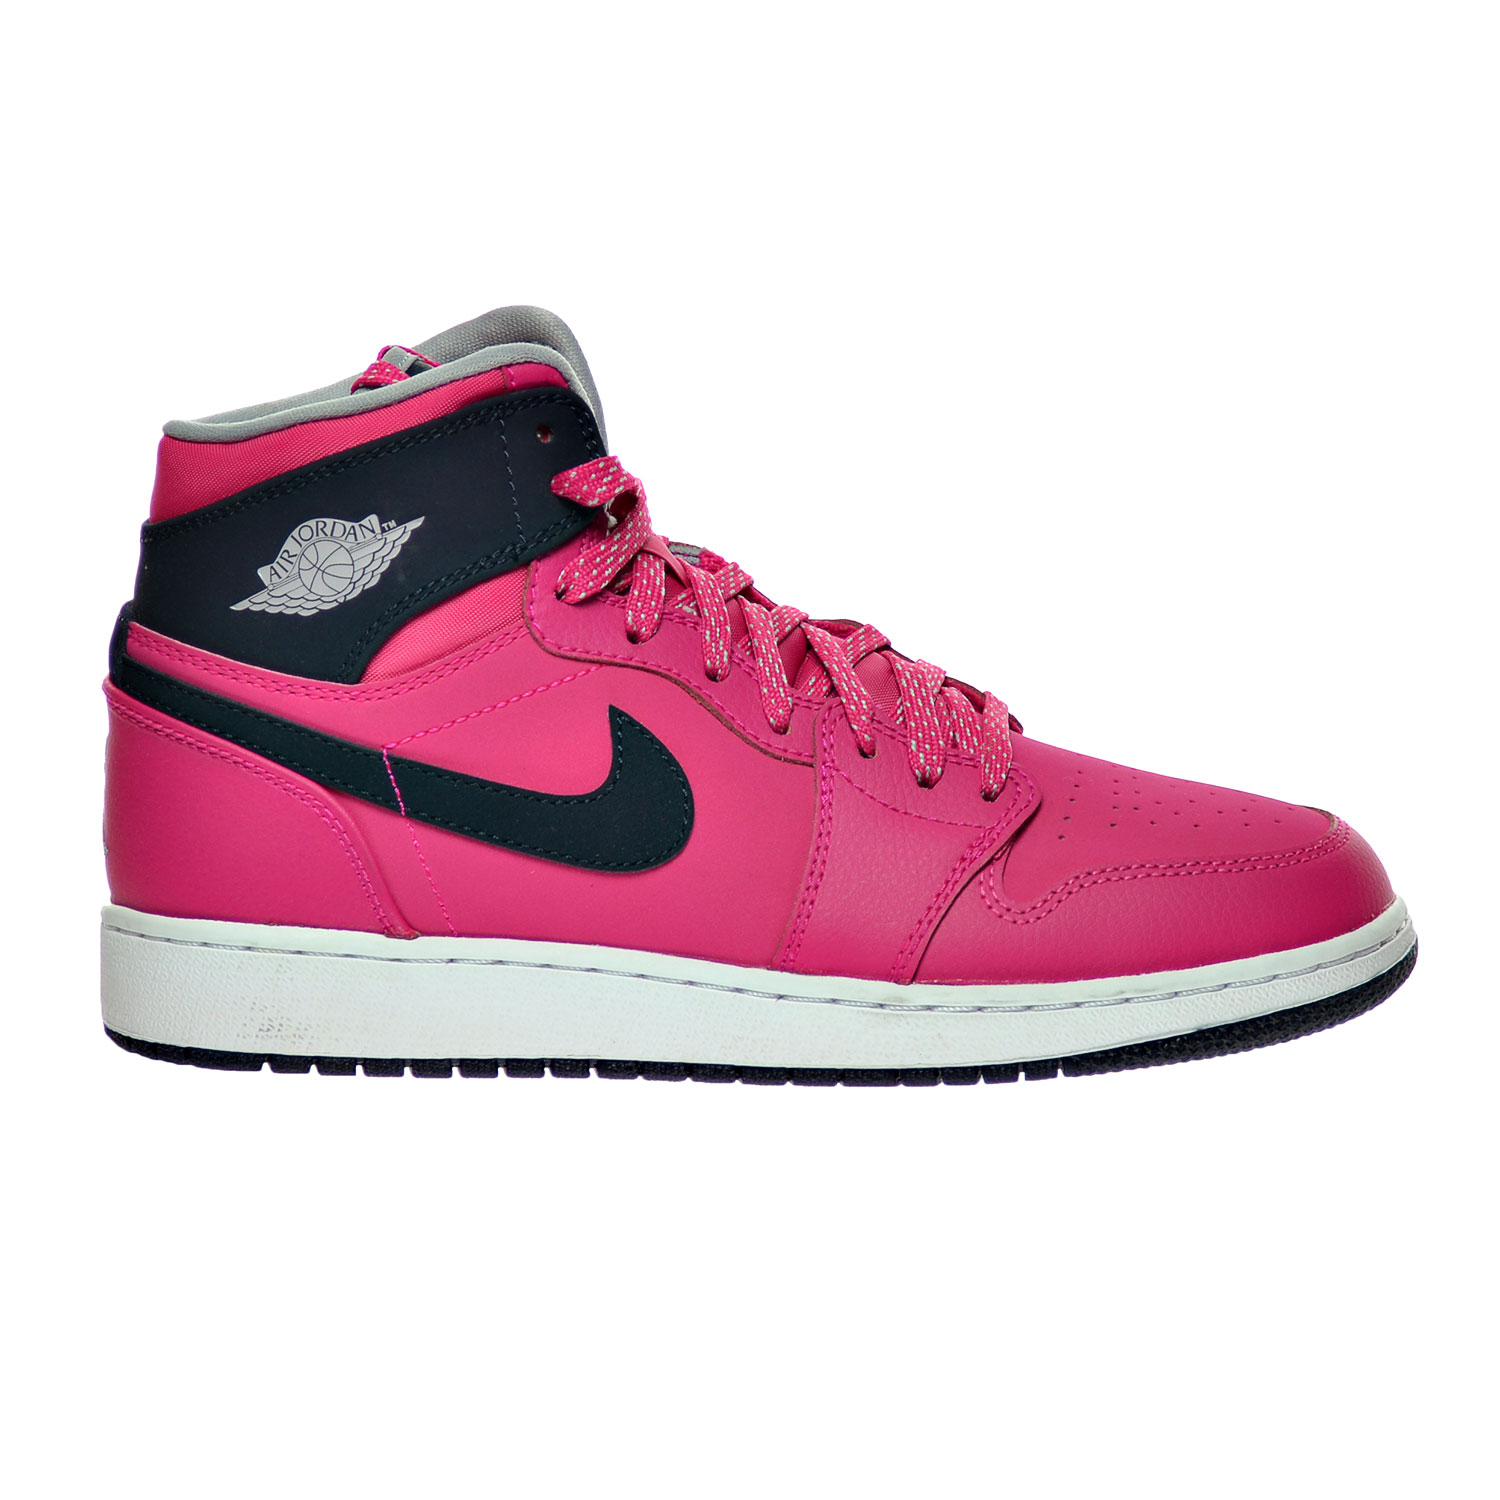 buy online 9096b f32d8 Details about Air Jordan 1 Retro High GG Big Kid's Shoes  Pink/Obsidian/Grey/White 332148-609